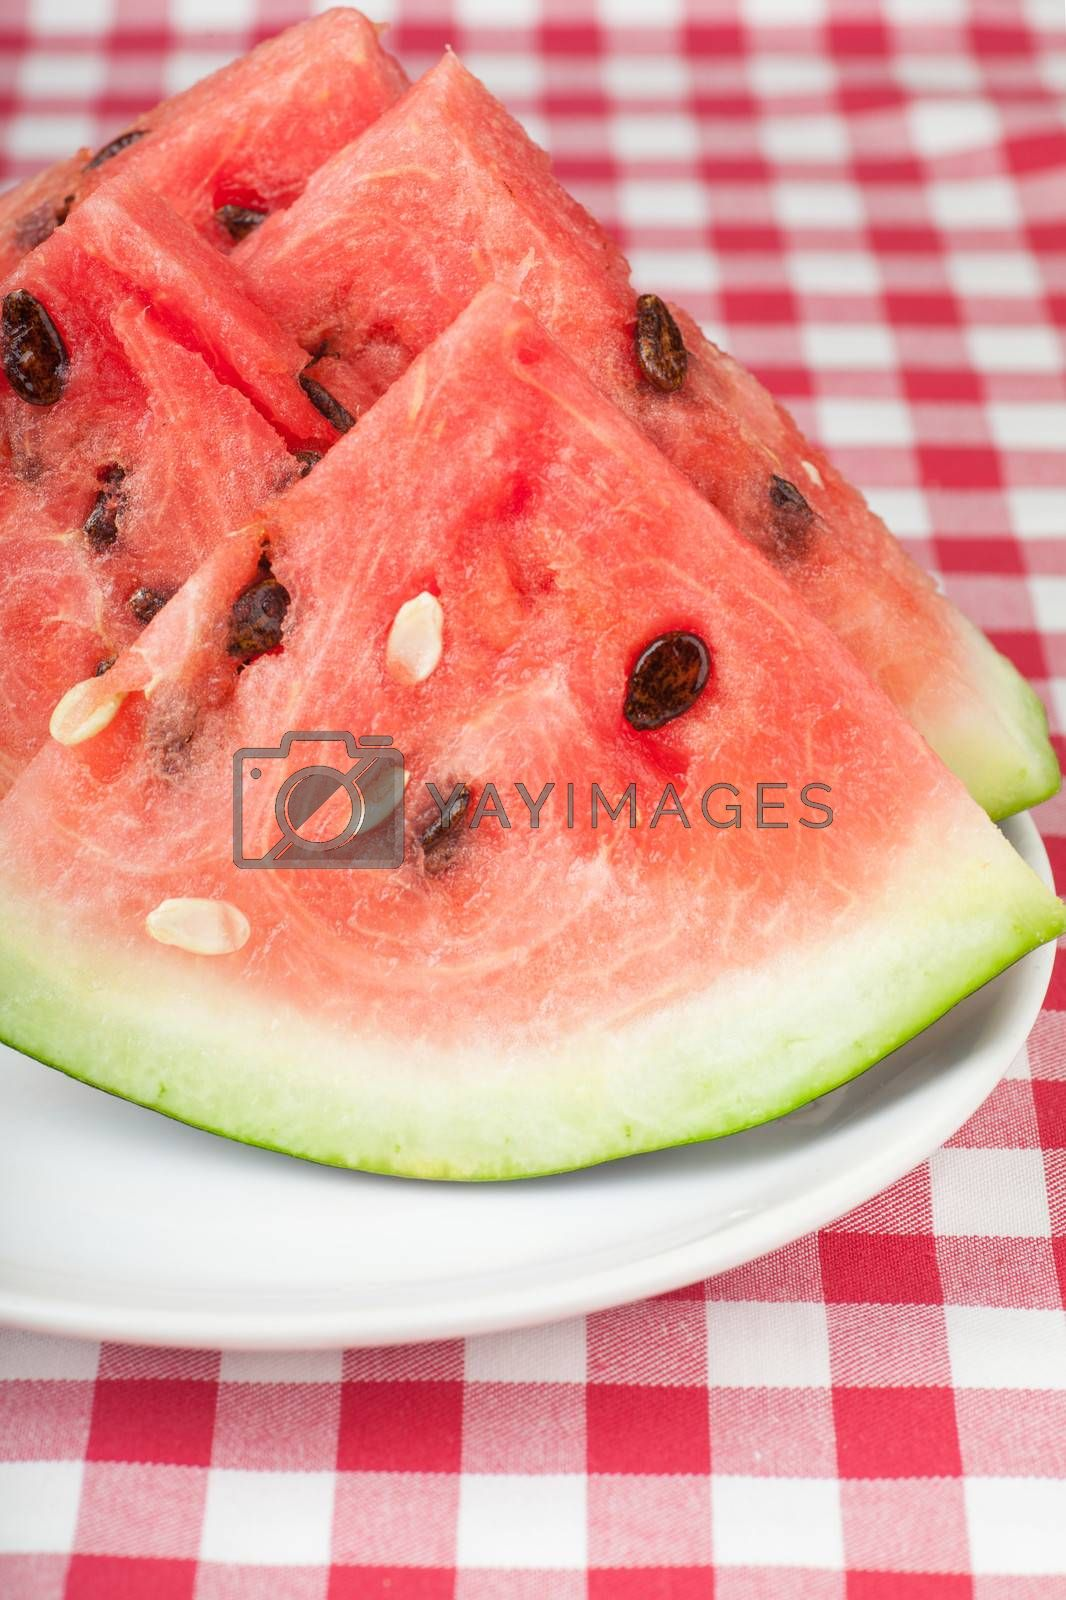 Fresh watermelon slices on a white plate